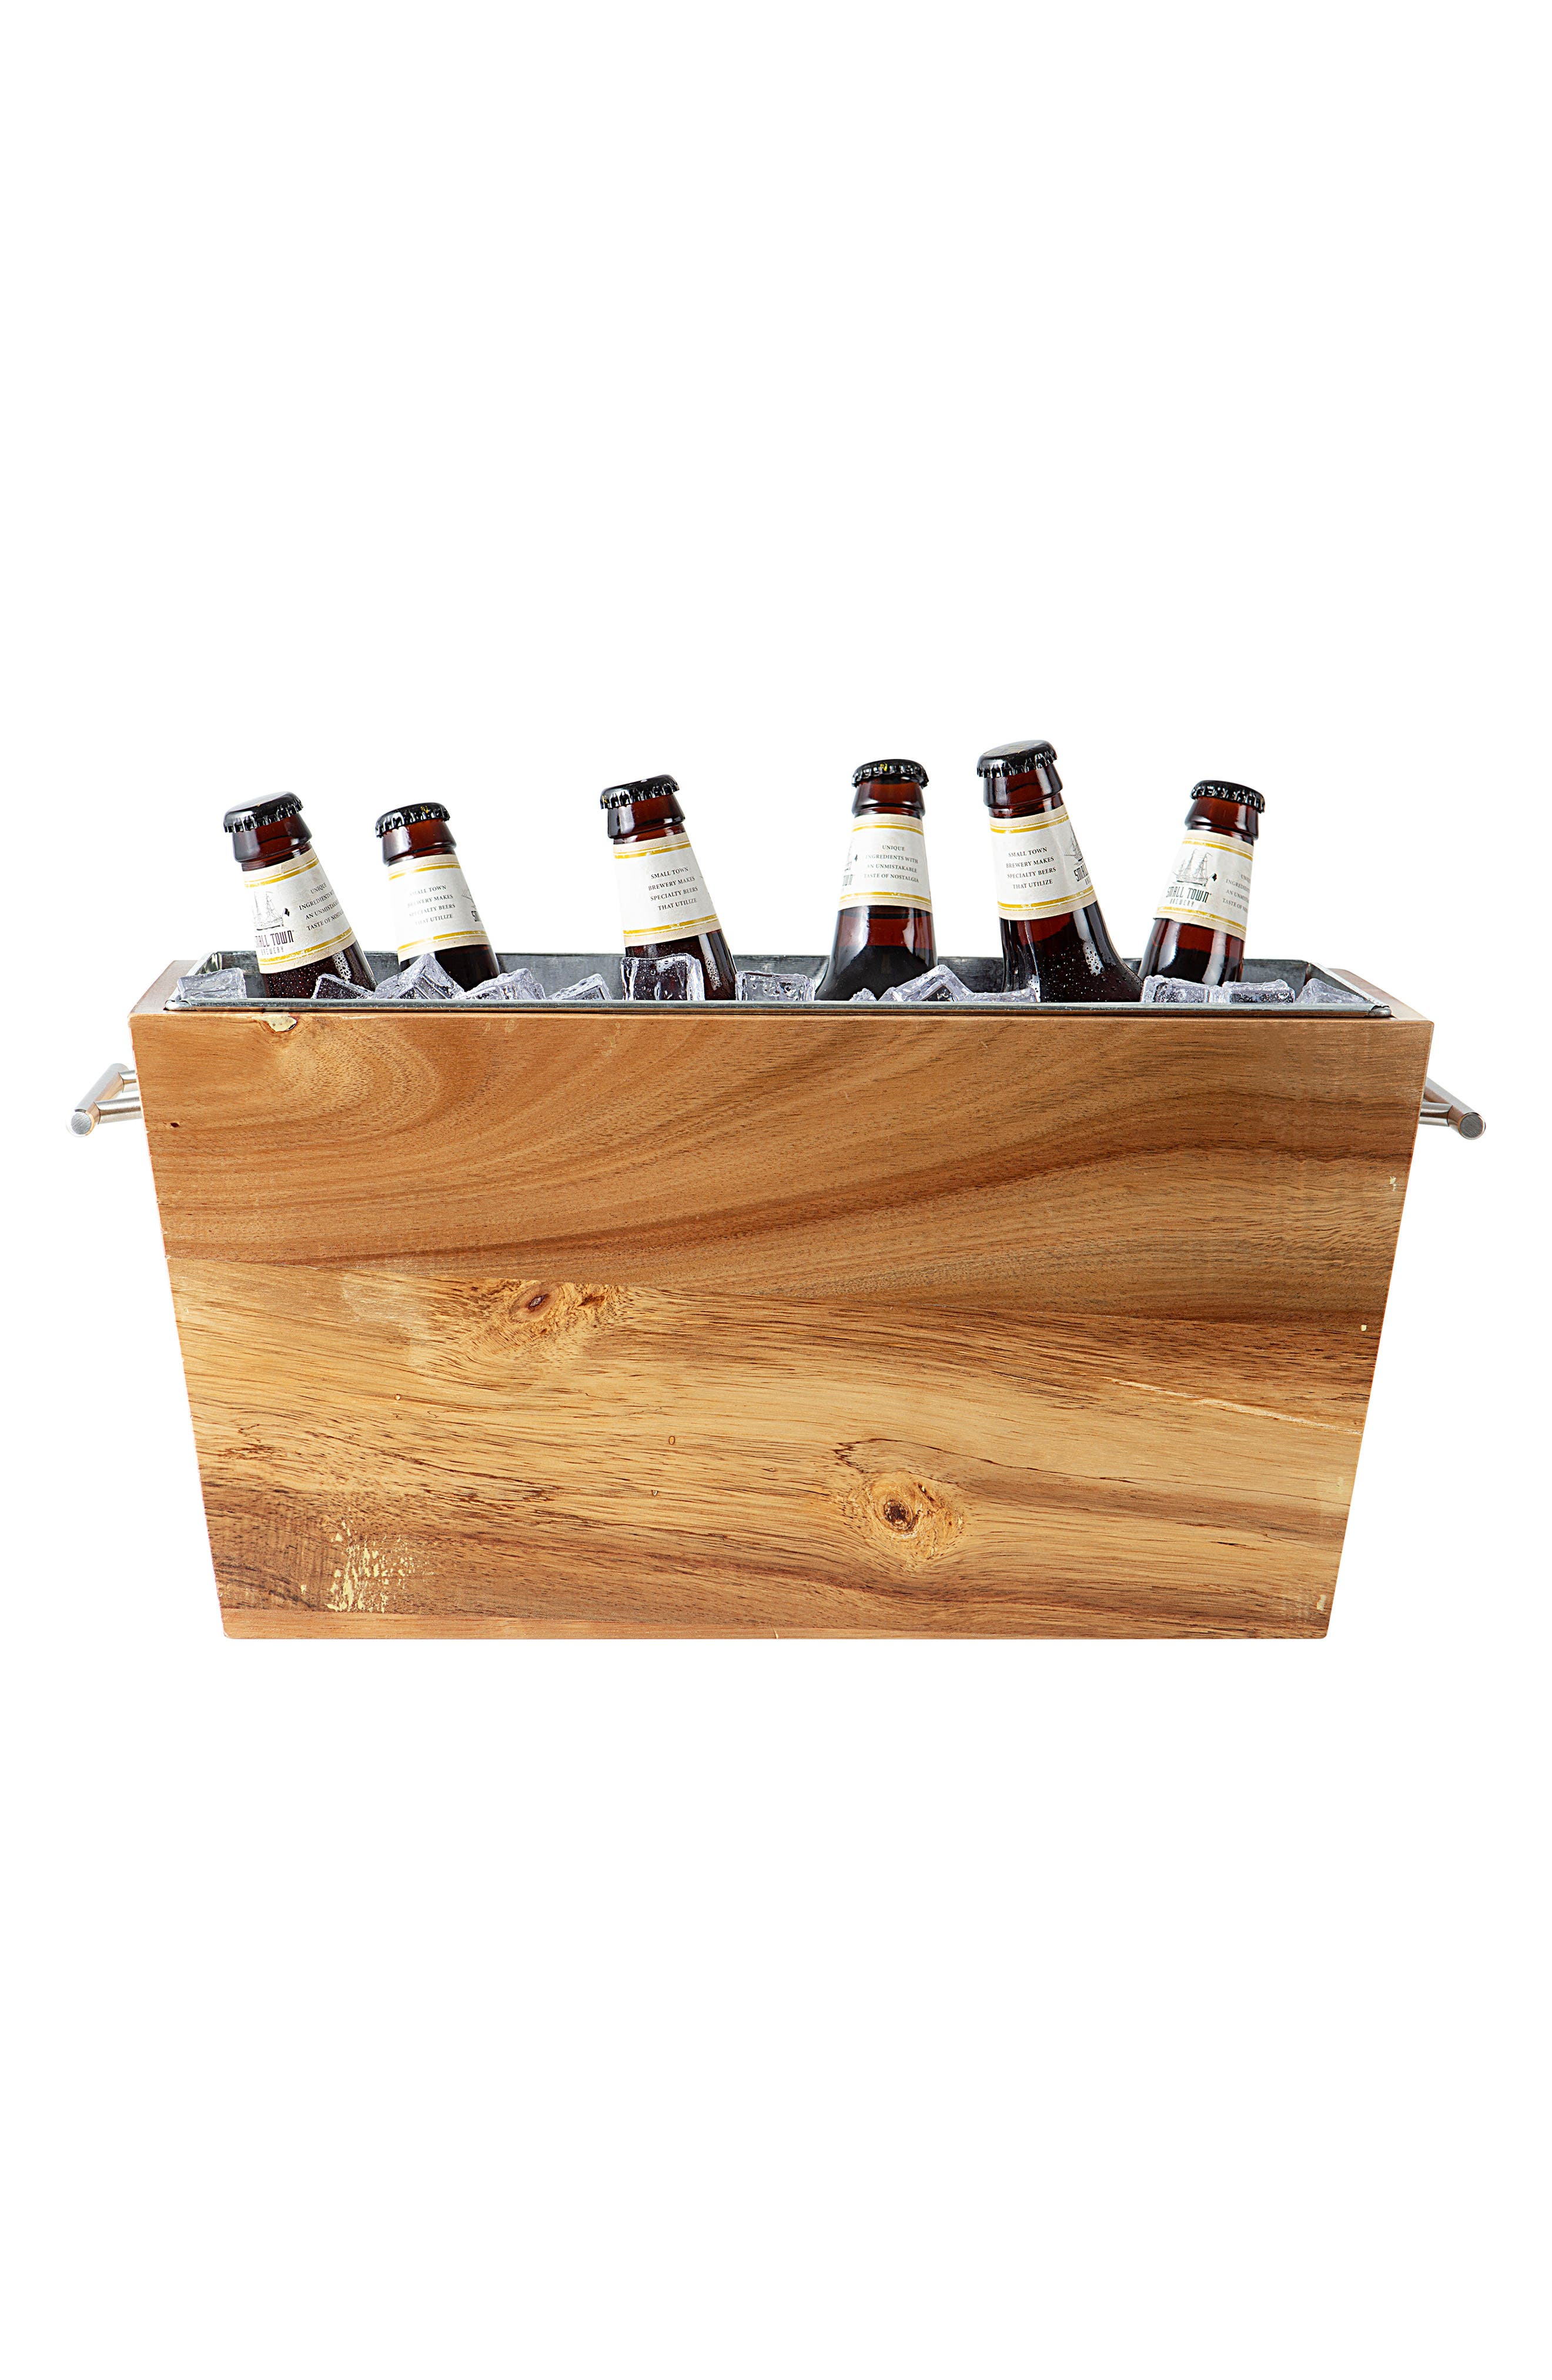 Monogram Wood Beverage Trough,                             Main thumbnail 1, color,                             200